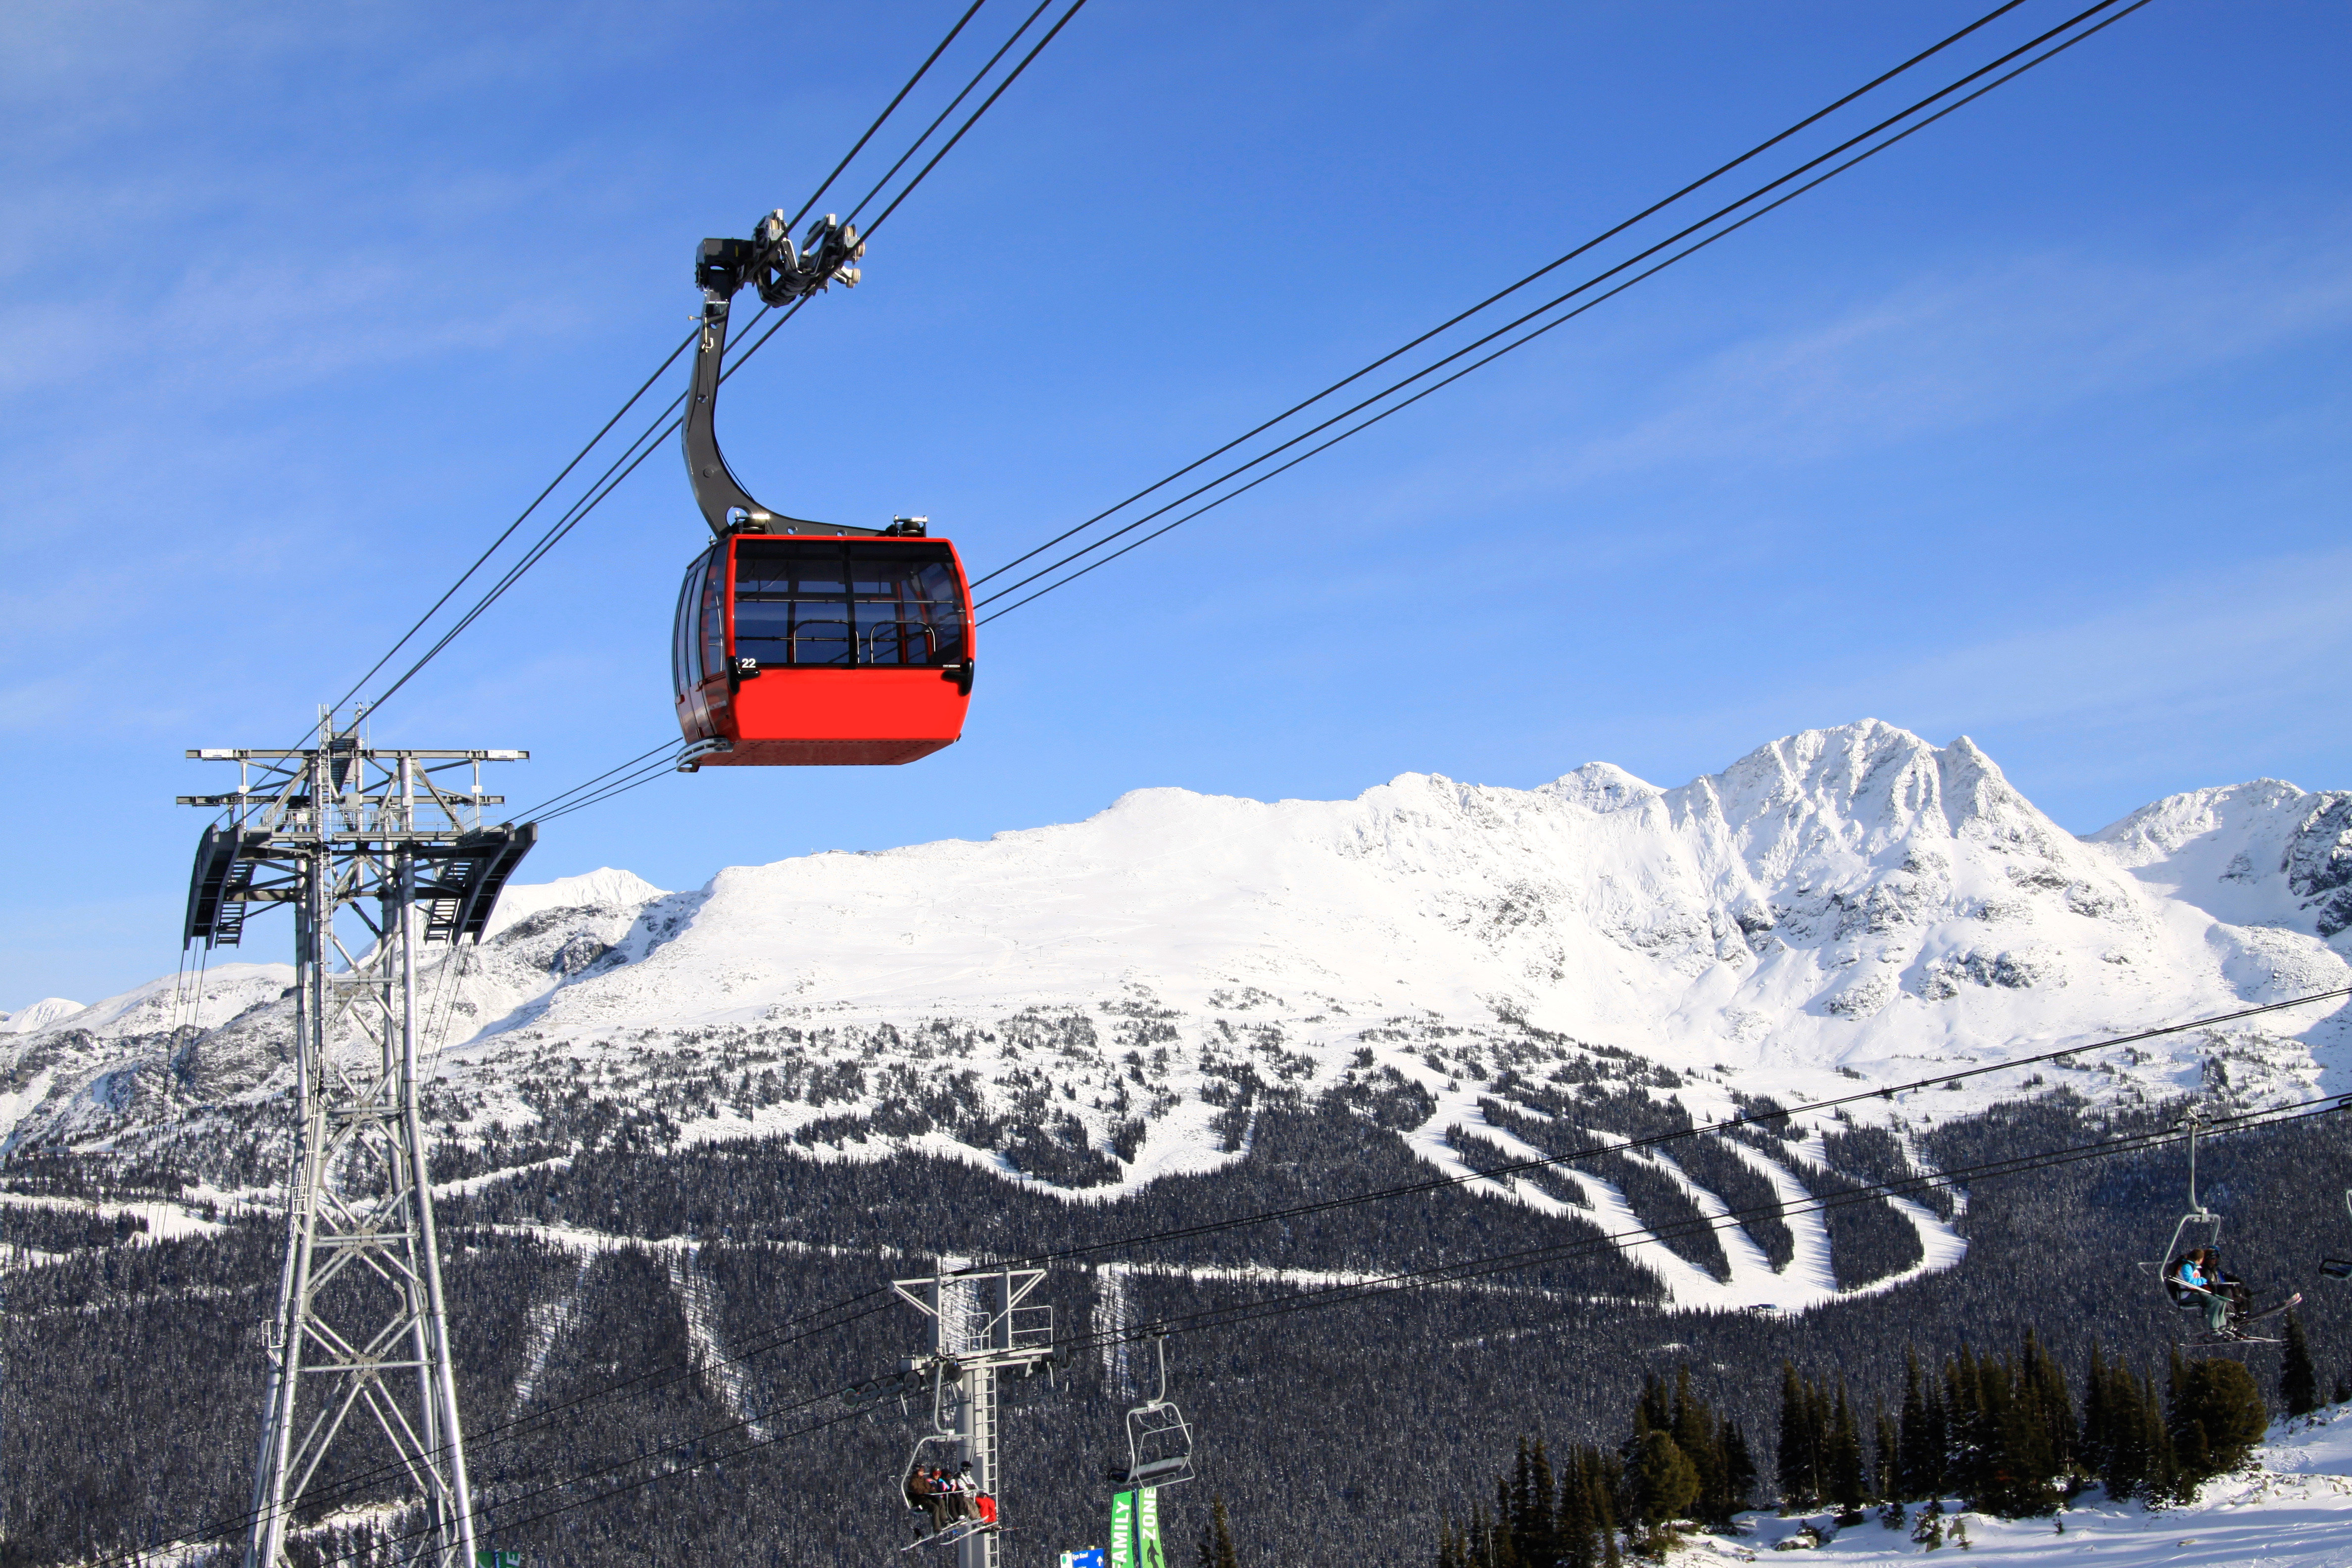 Mountains Outdoor Activities Outdoors Scenic views Ski Sport sky snow transport cable car mountain piste mountain range geological phenomenon skiing ski equipment vehicle winter sport alps sports equipment nordic skiing